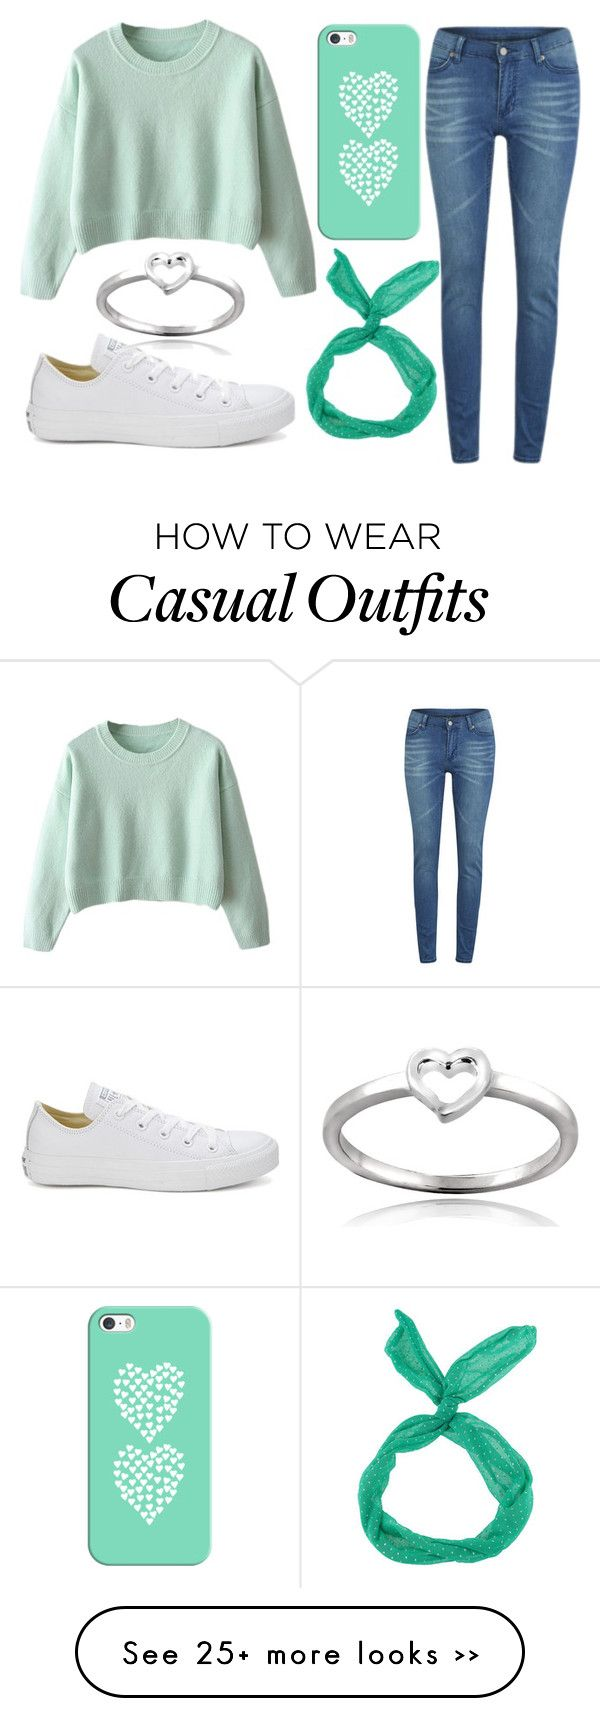 Casual #44 by mjgurr on Polyvore featuring Cheap Monday, Casetify, Converse and Mondevio